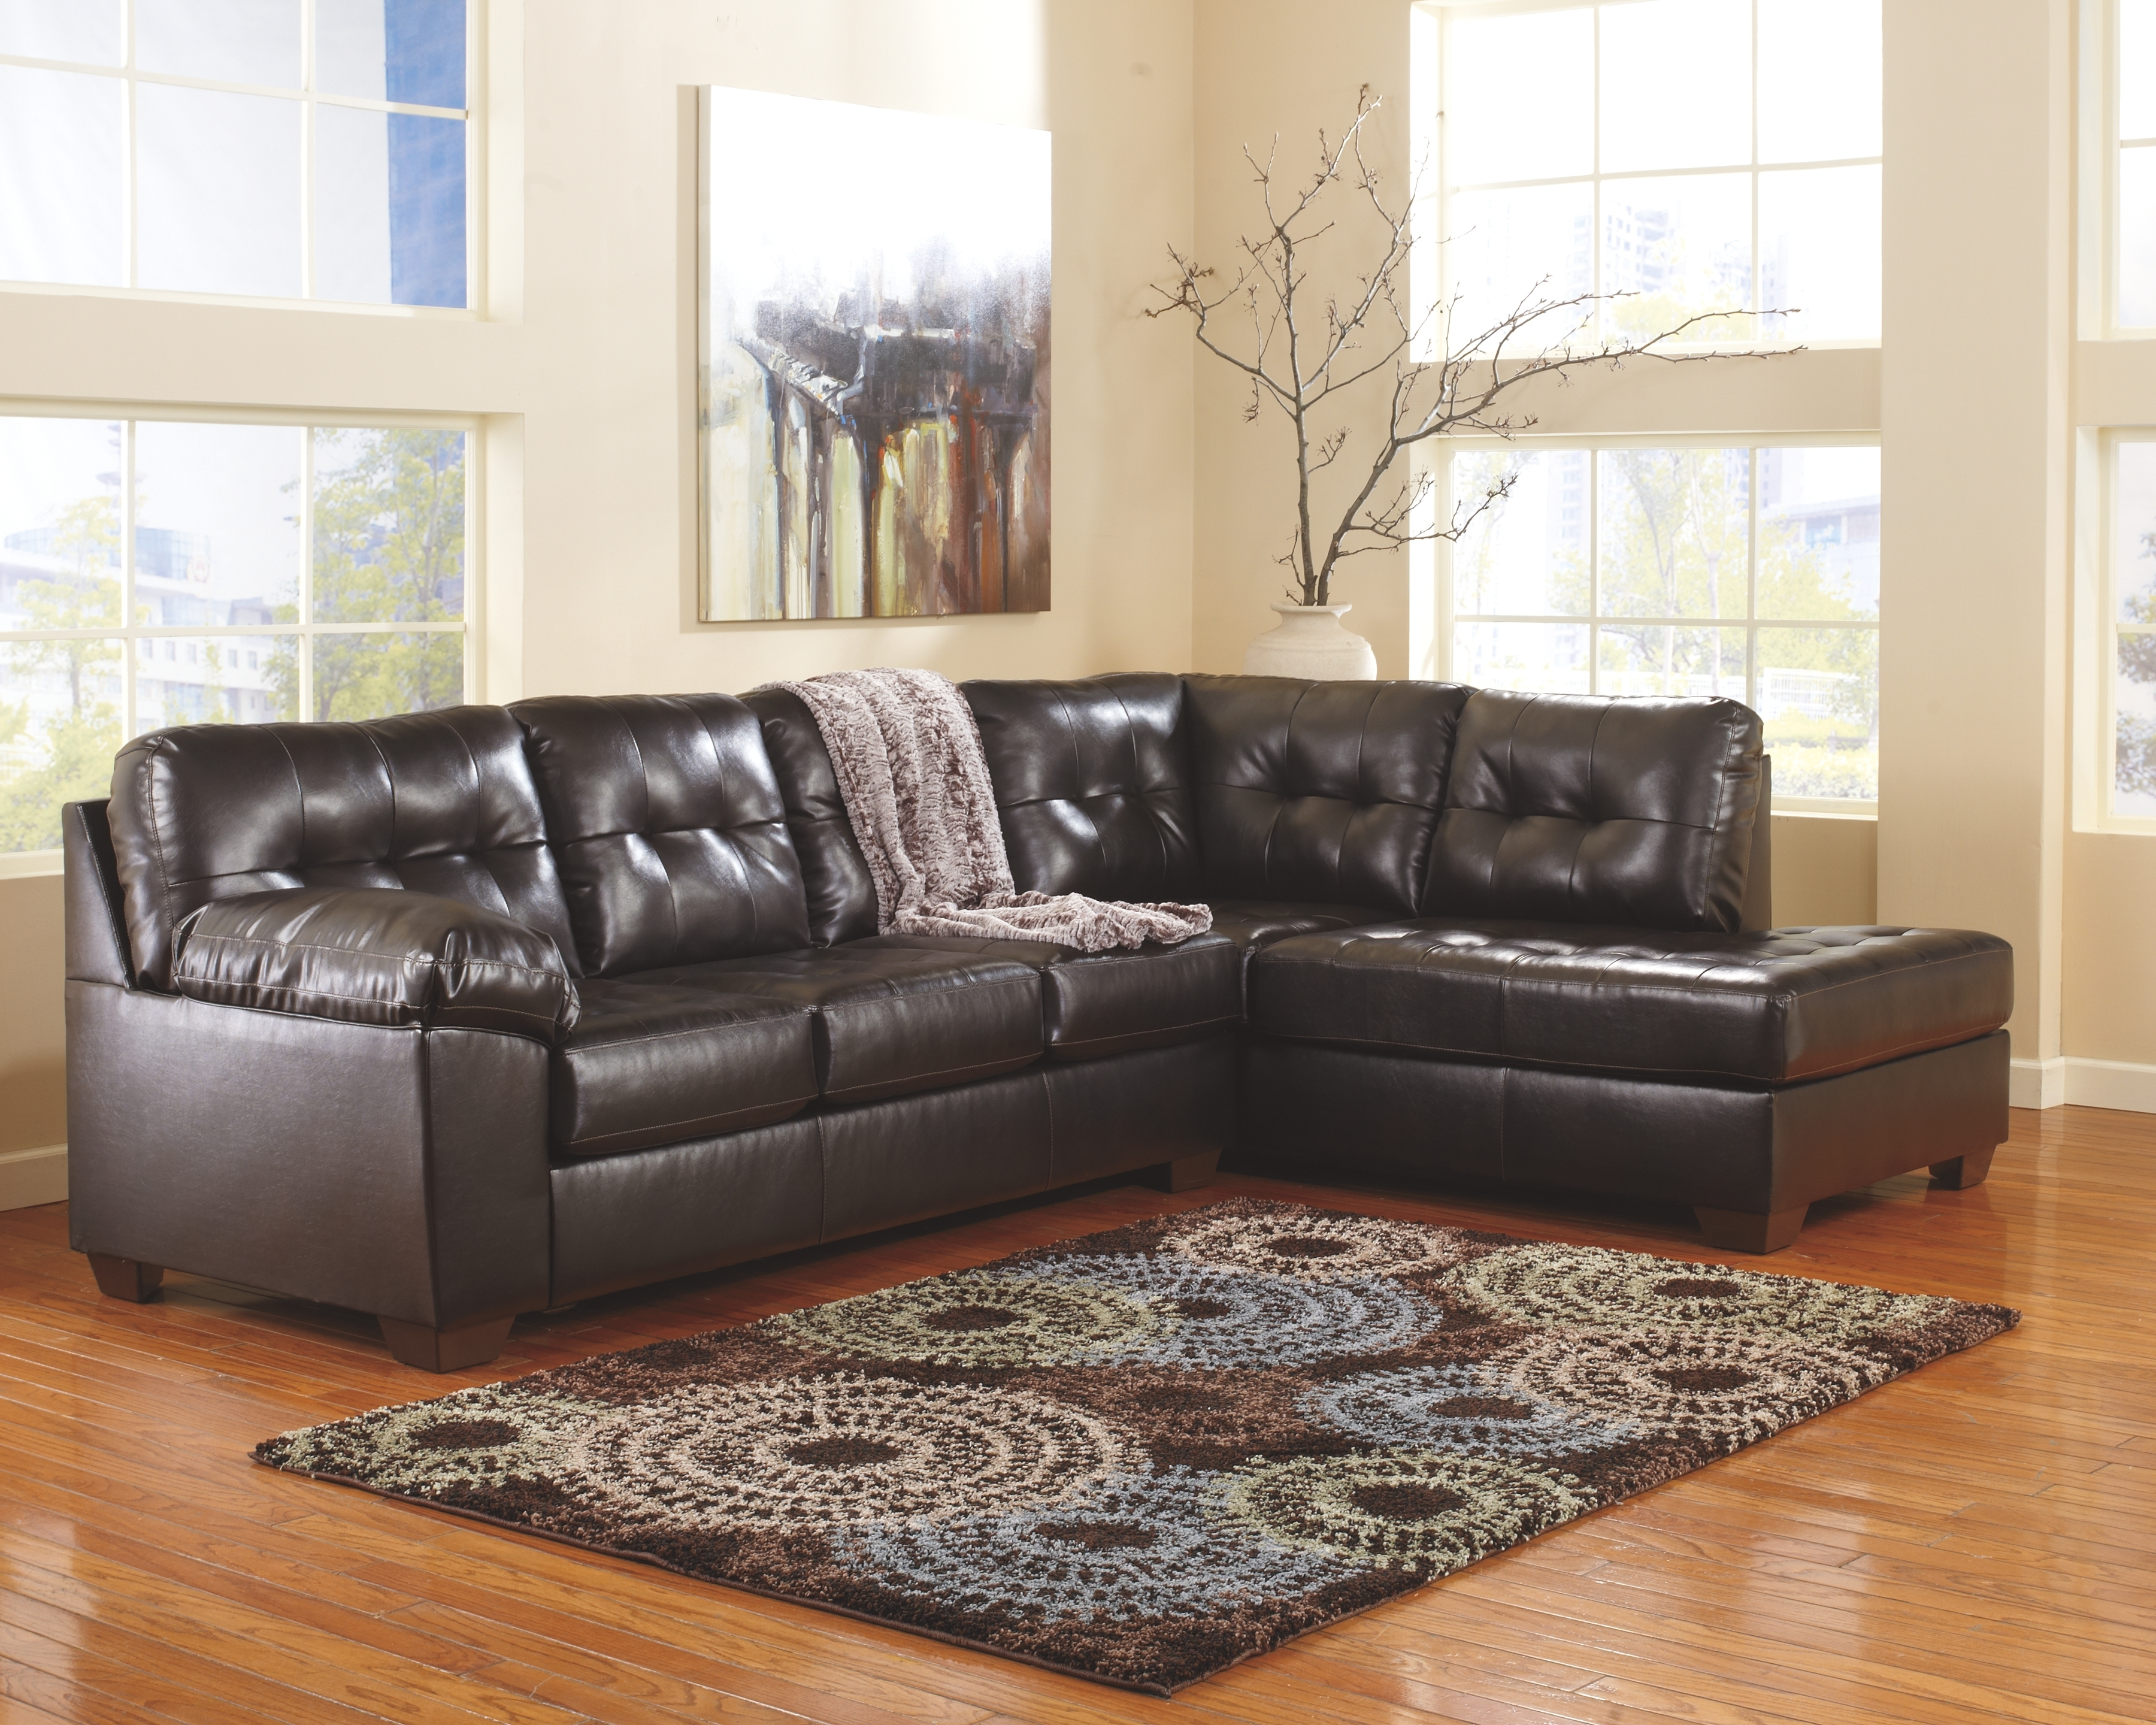 Alliston 2 Piece Sectional, Chocolate | Products | Pinterest | Products For Marissa Ii 3 Piece Sectionals (View 16 of 25)